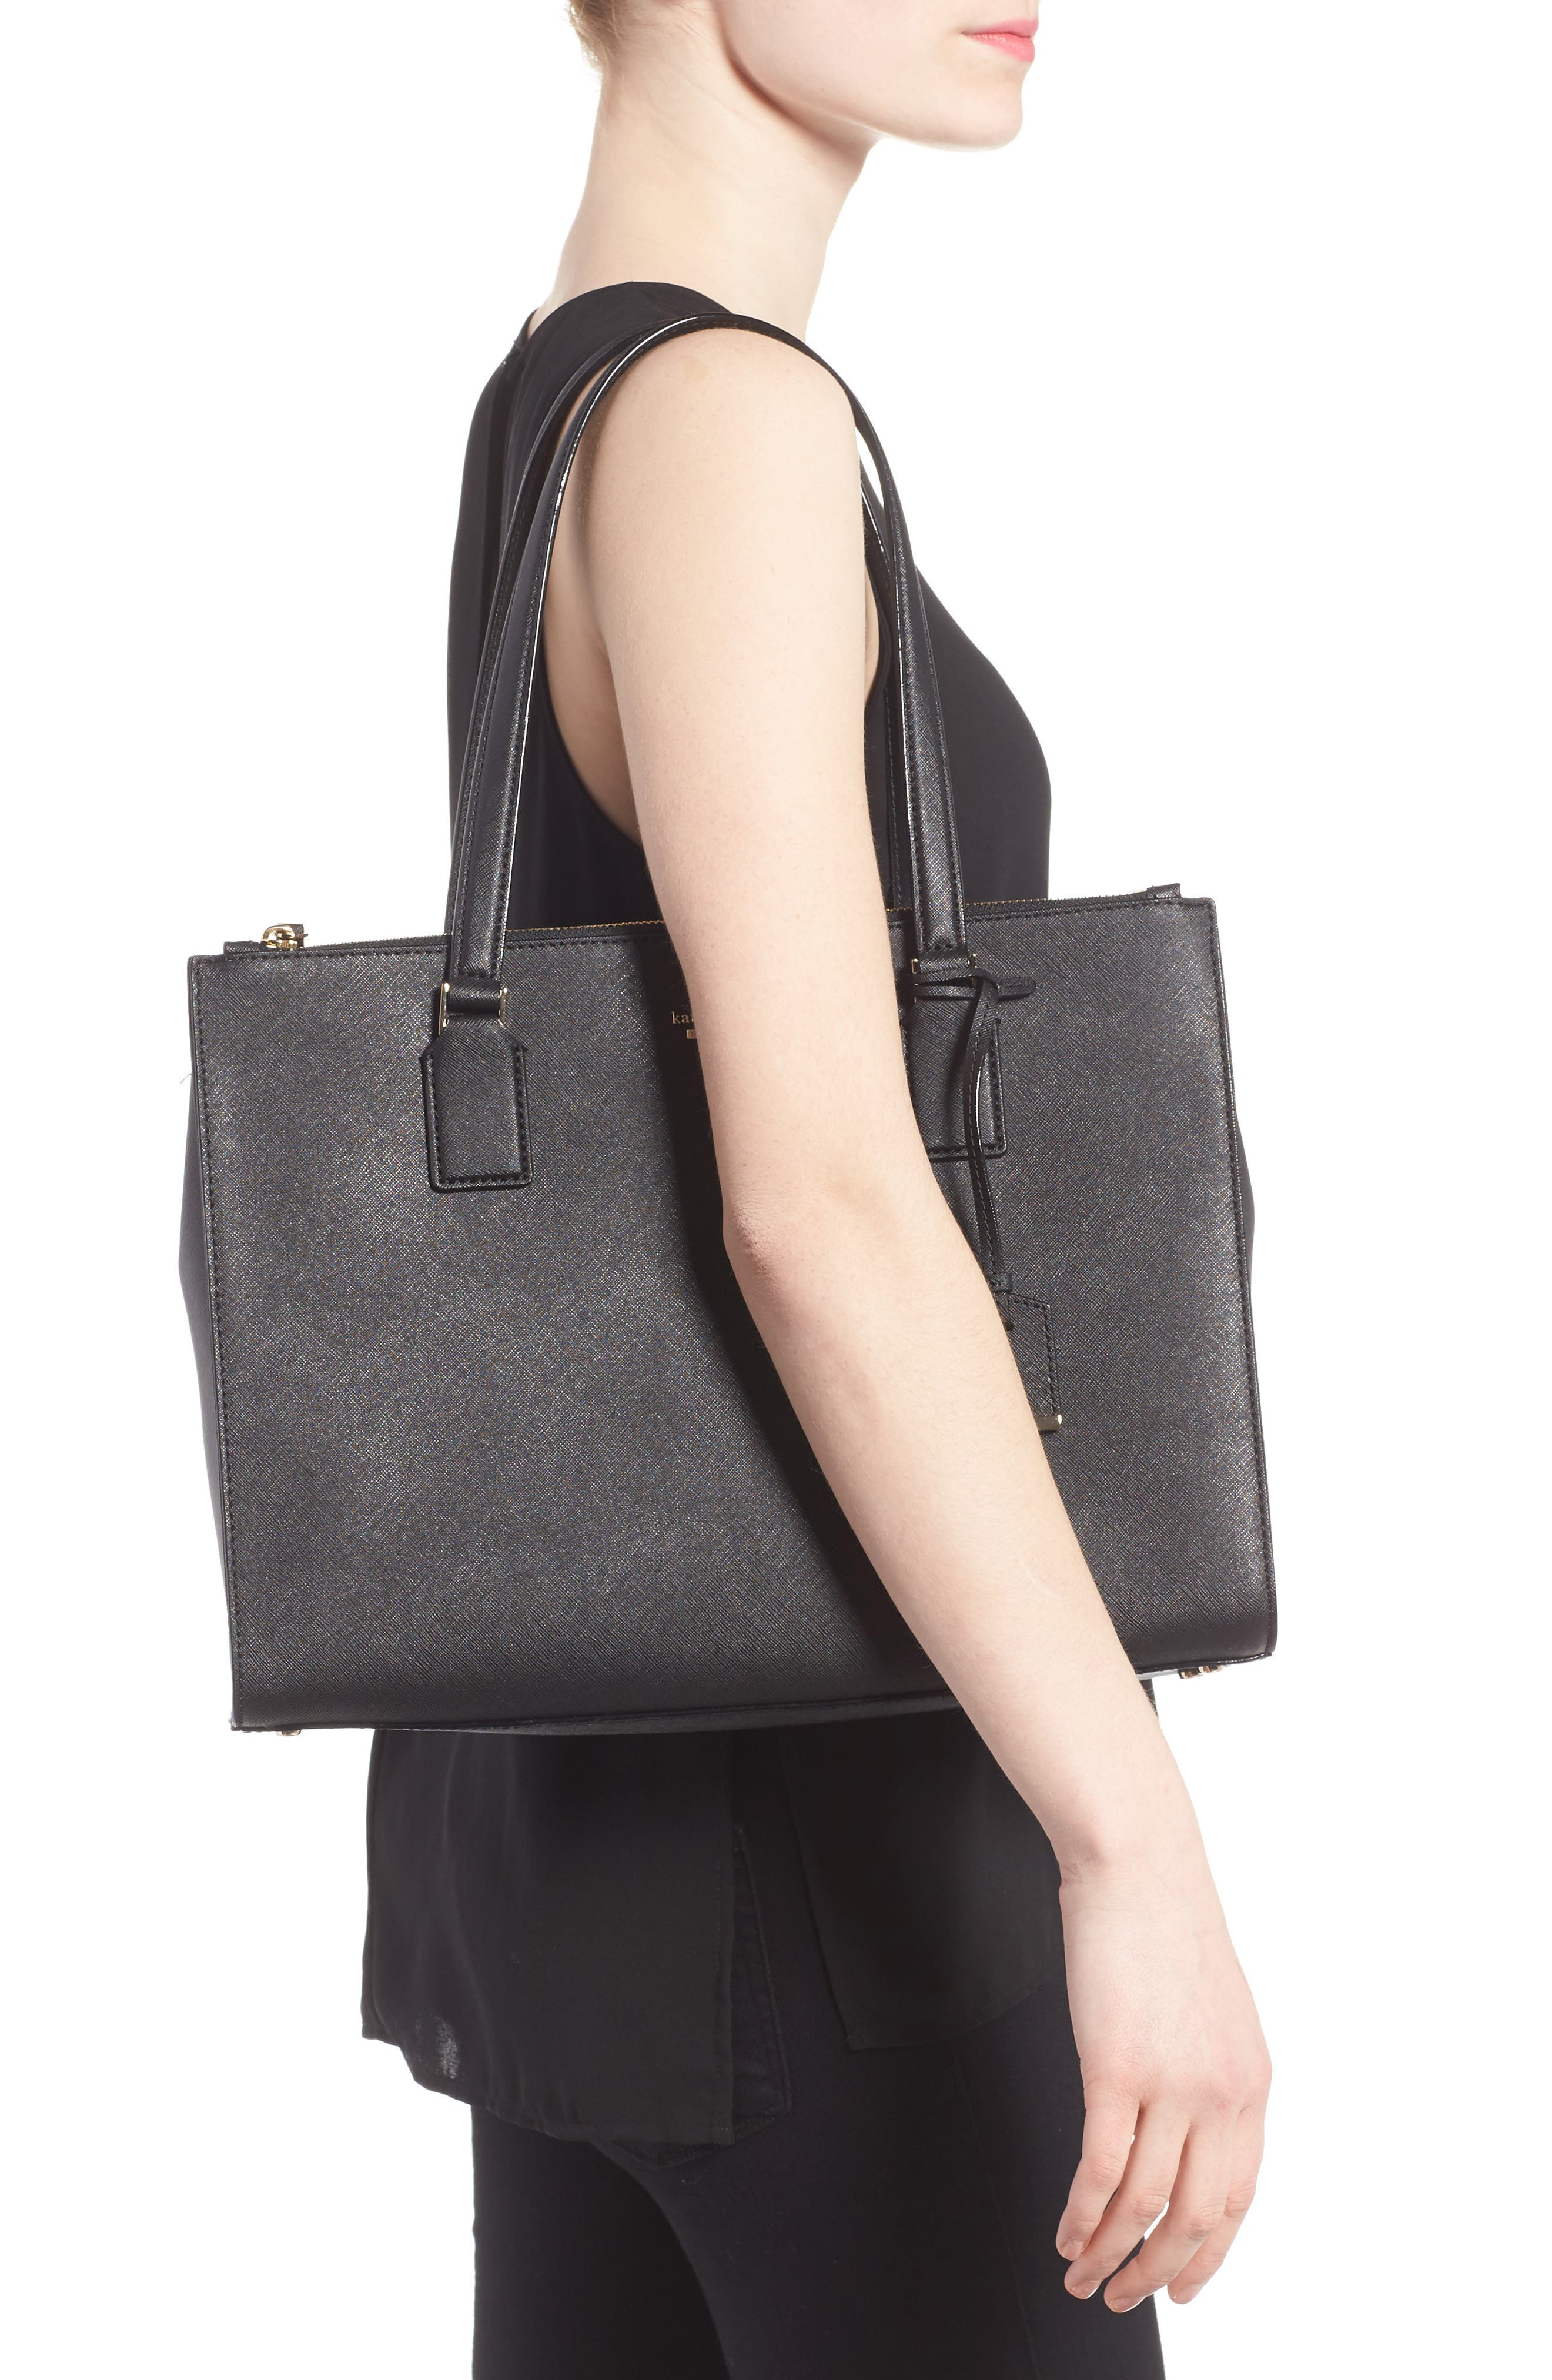 cameron street - jensen leather tote,                             Alternate thumbnail 2, color,                             001